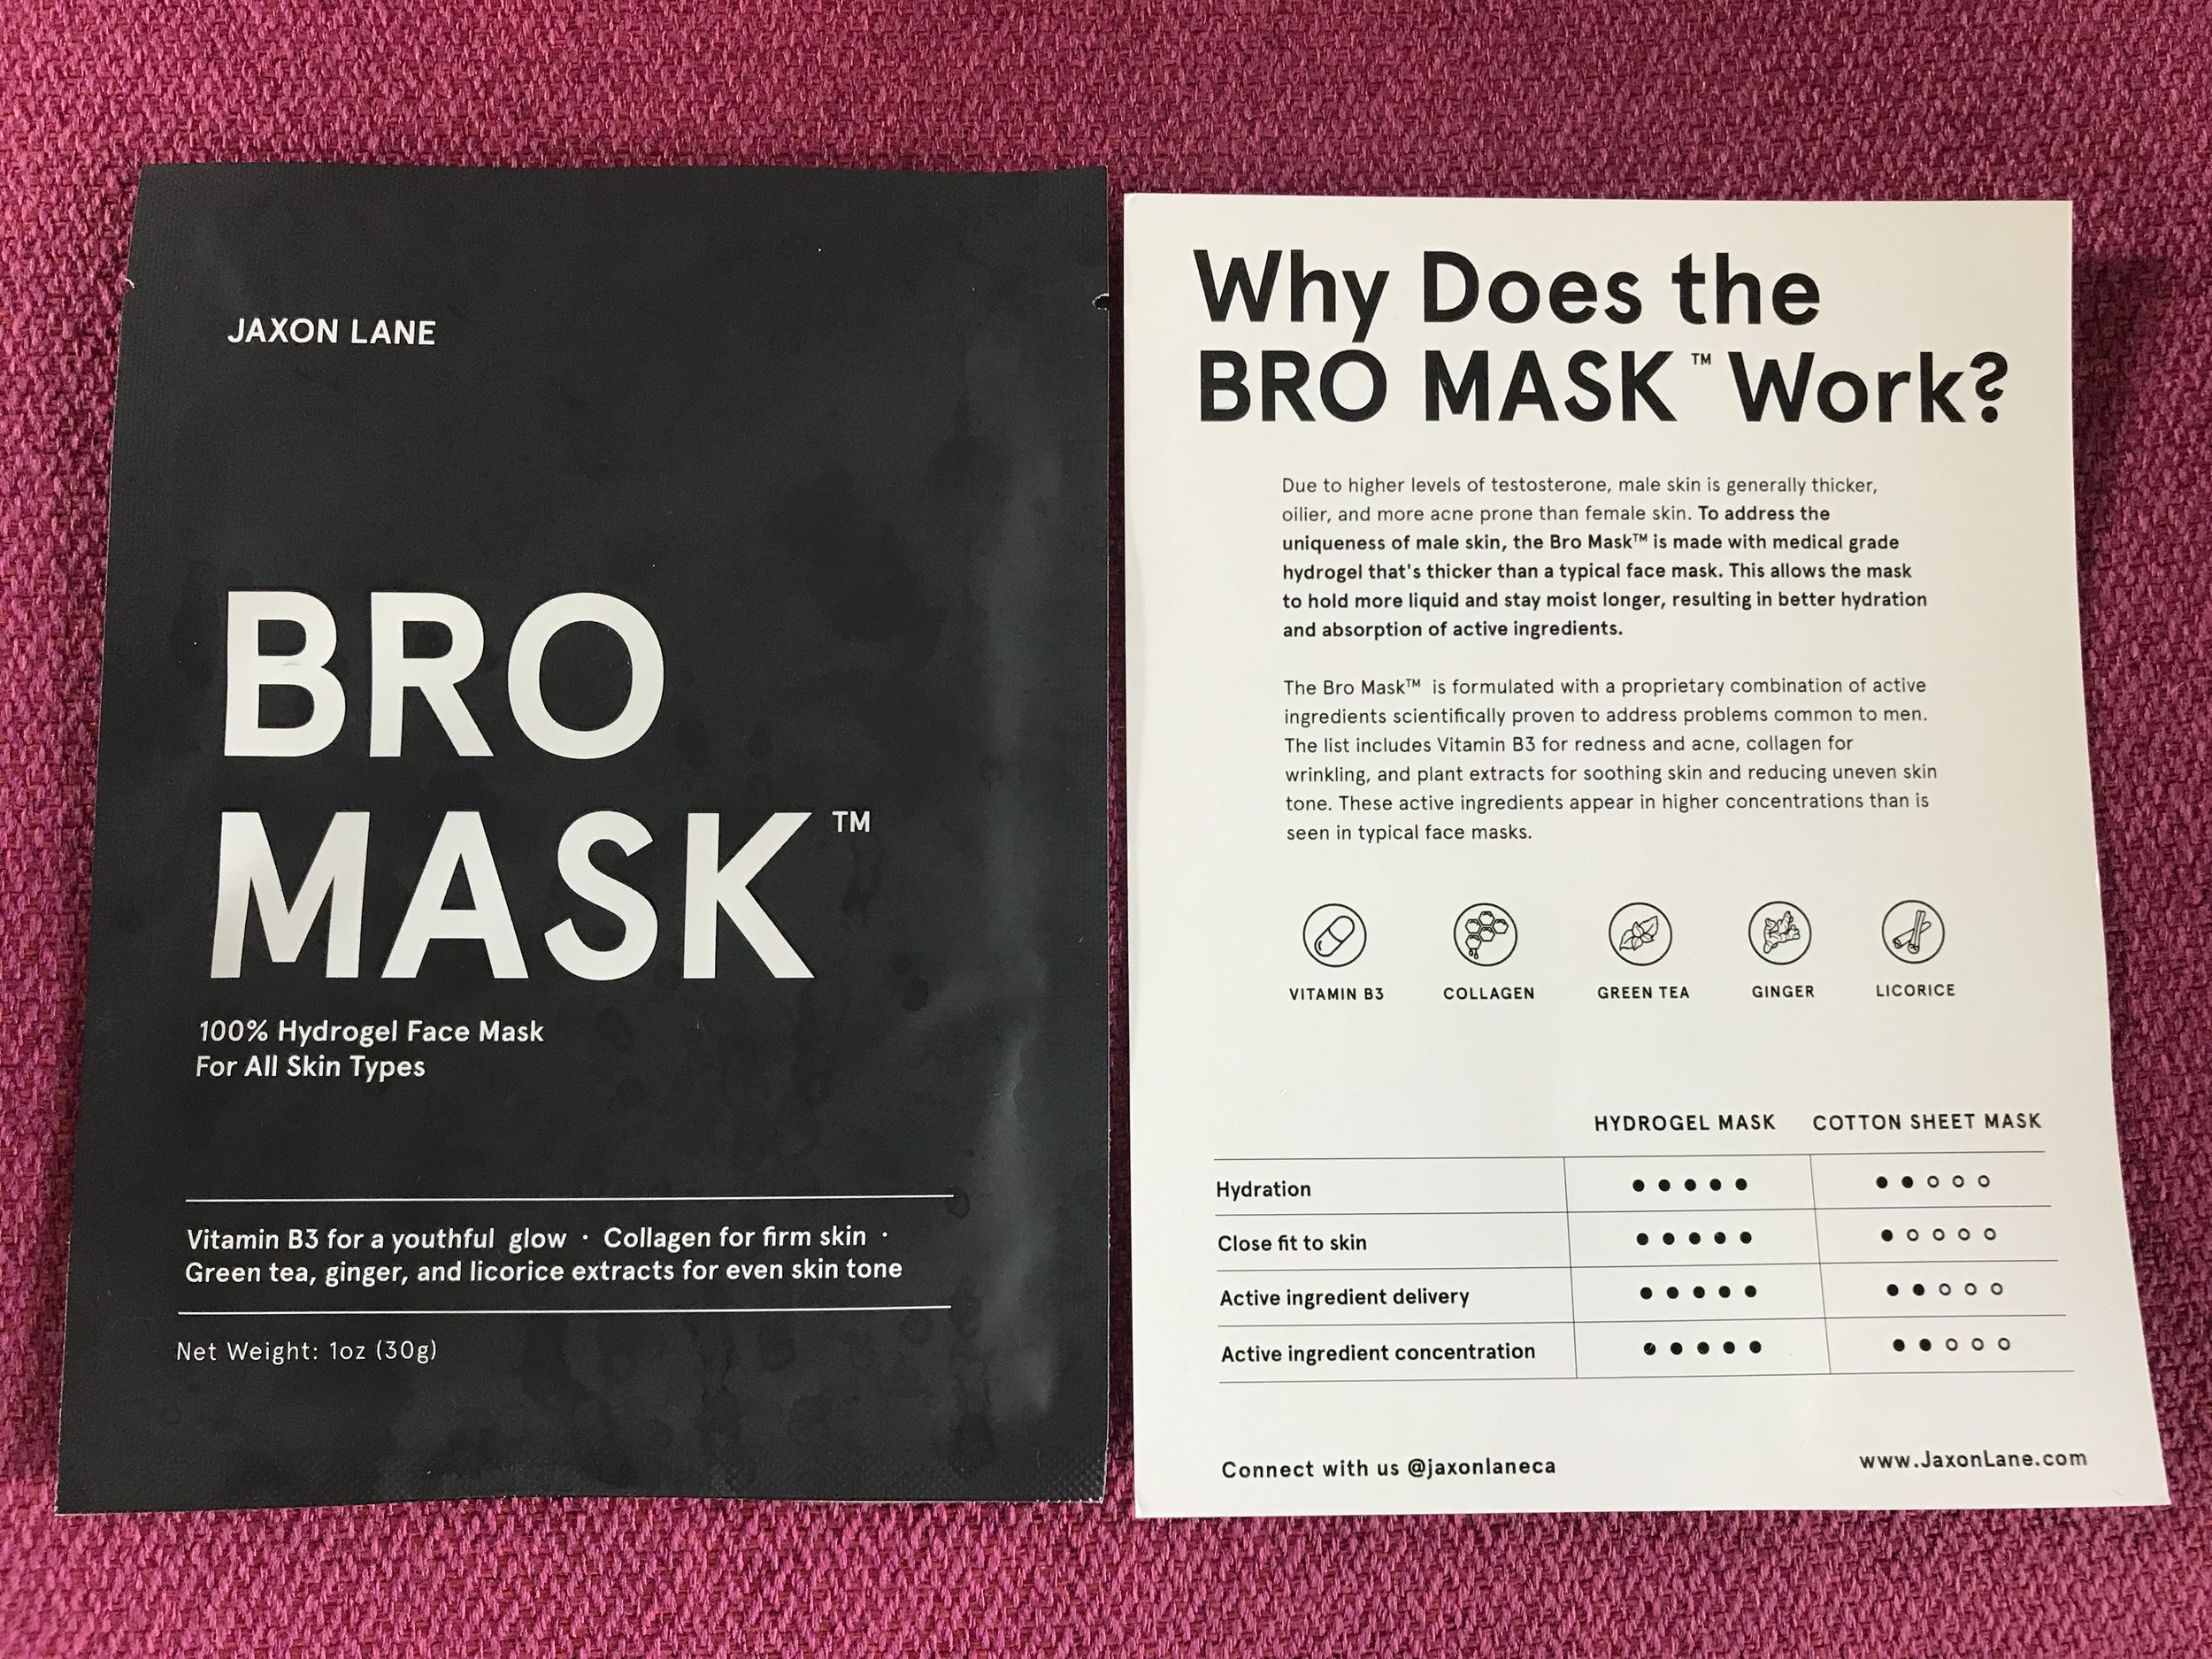 Bro Mask by Jaxon Lane